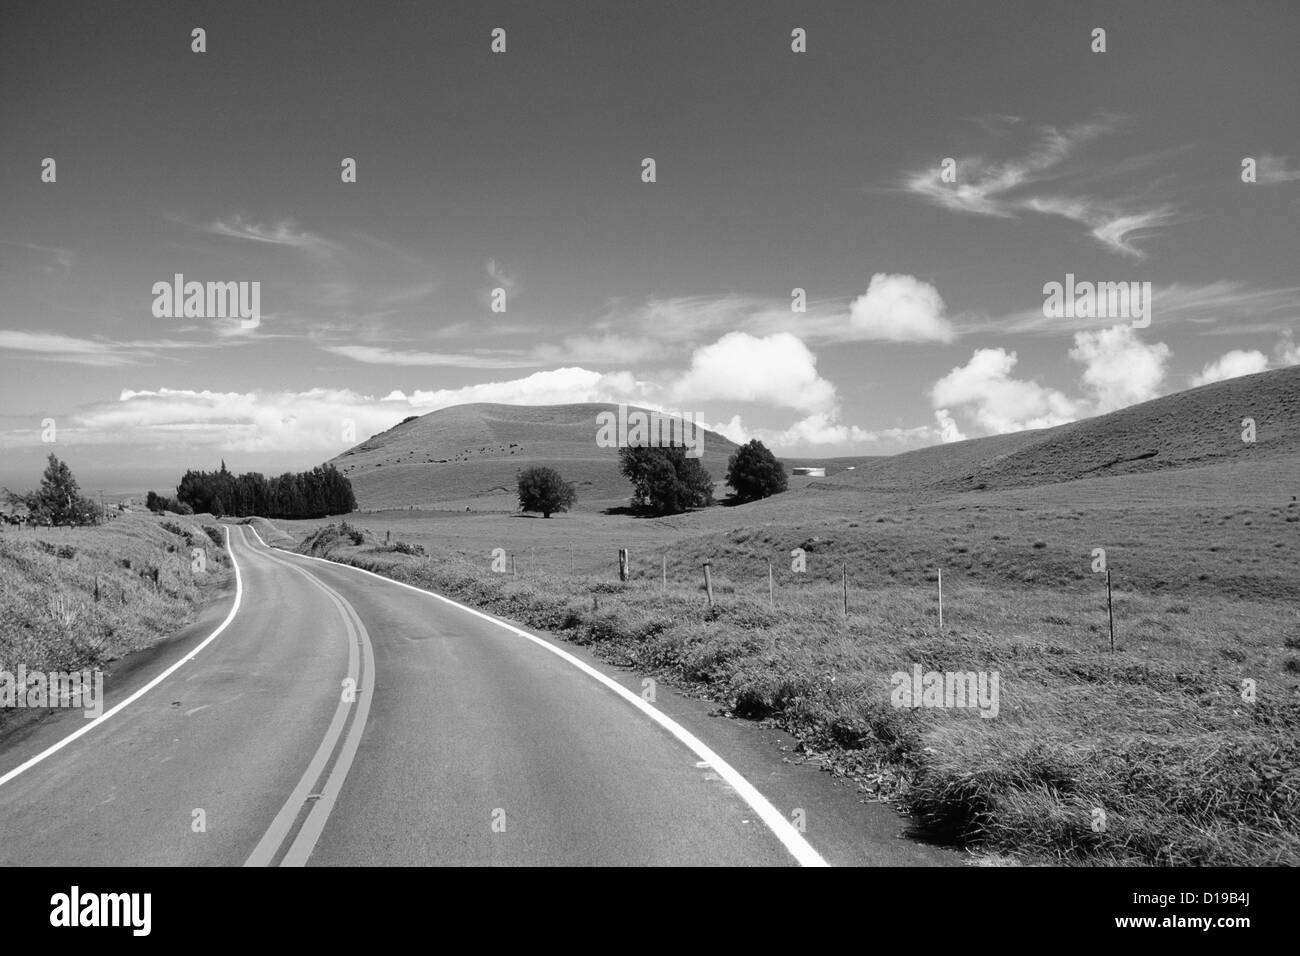 Hawaii, Big Island, Waimea Ranchland, Road Curving Through Pastures (Black And White Photograph). - Stock Image